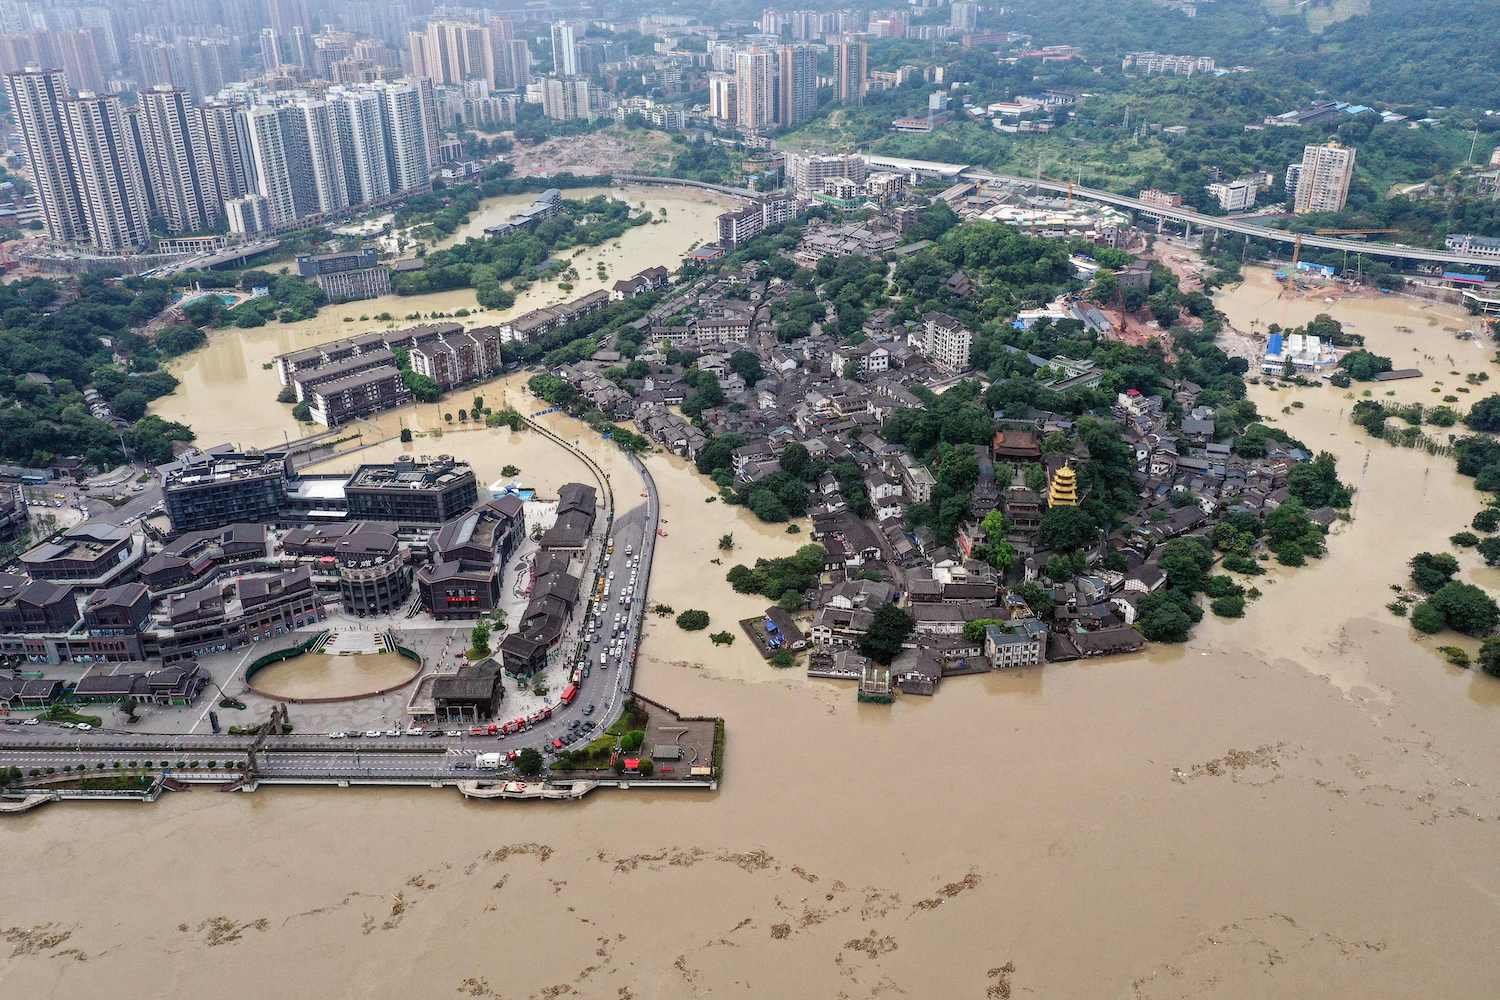 An aerial photo taken on Wednesday shows a flooded area in Chongqing in southwestern China. Floods have washed away roads and forced tens of thousands from their homes, with authorities warning that the giant Three Gorges Dam is facing the largest flood peak in its history. (AFP Photo)